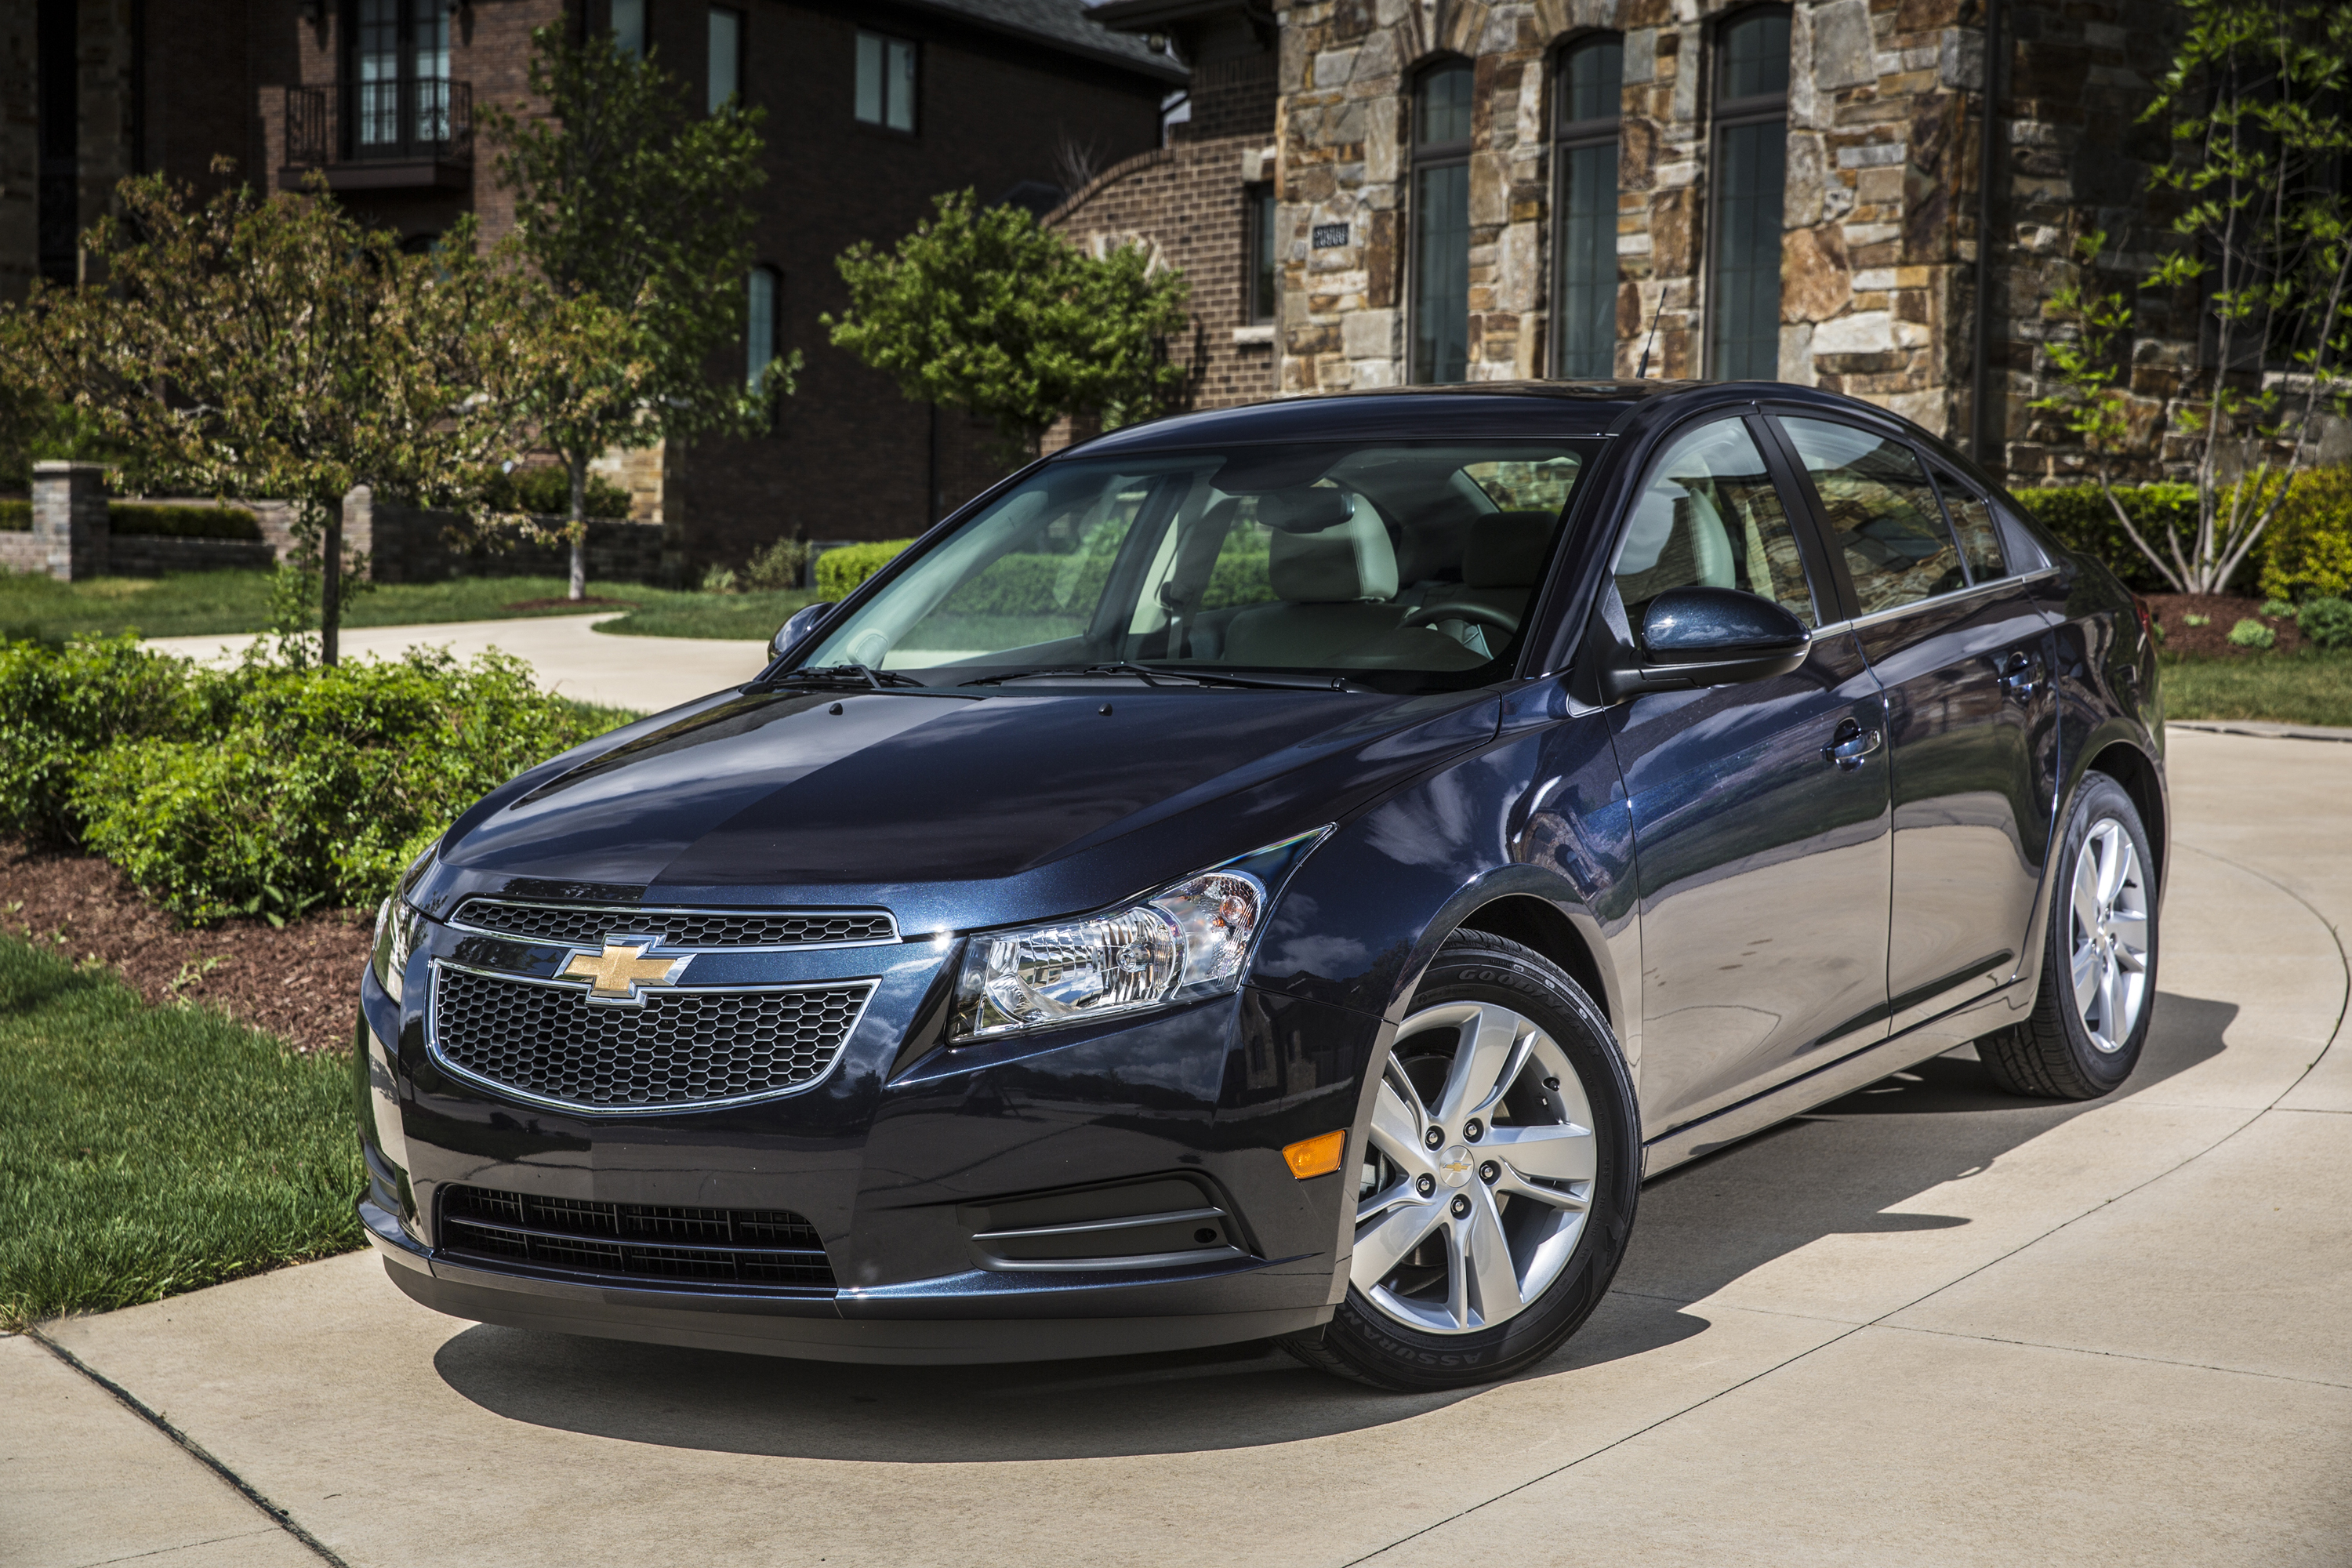 listings cruze chevrolet vehicle overview credit auto express chevy